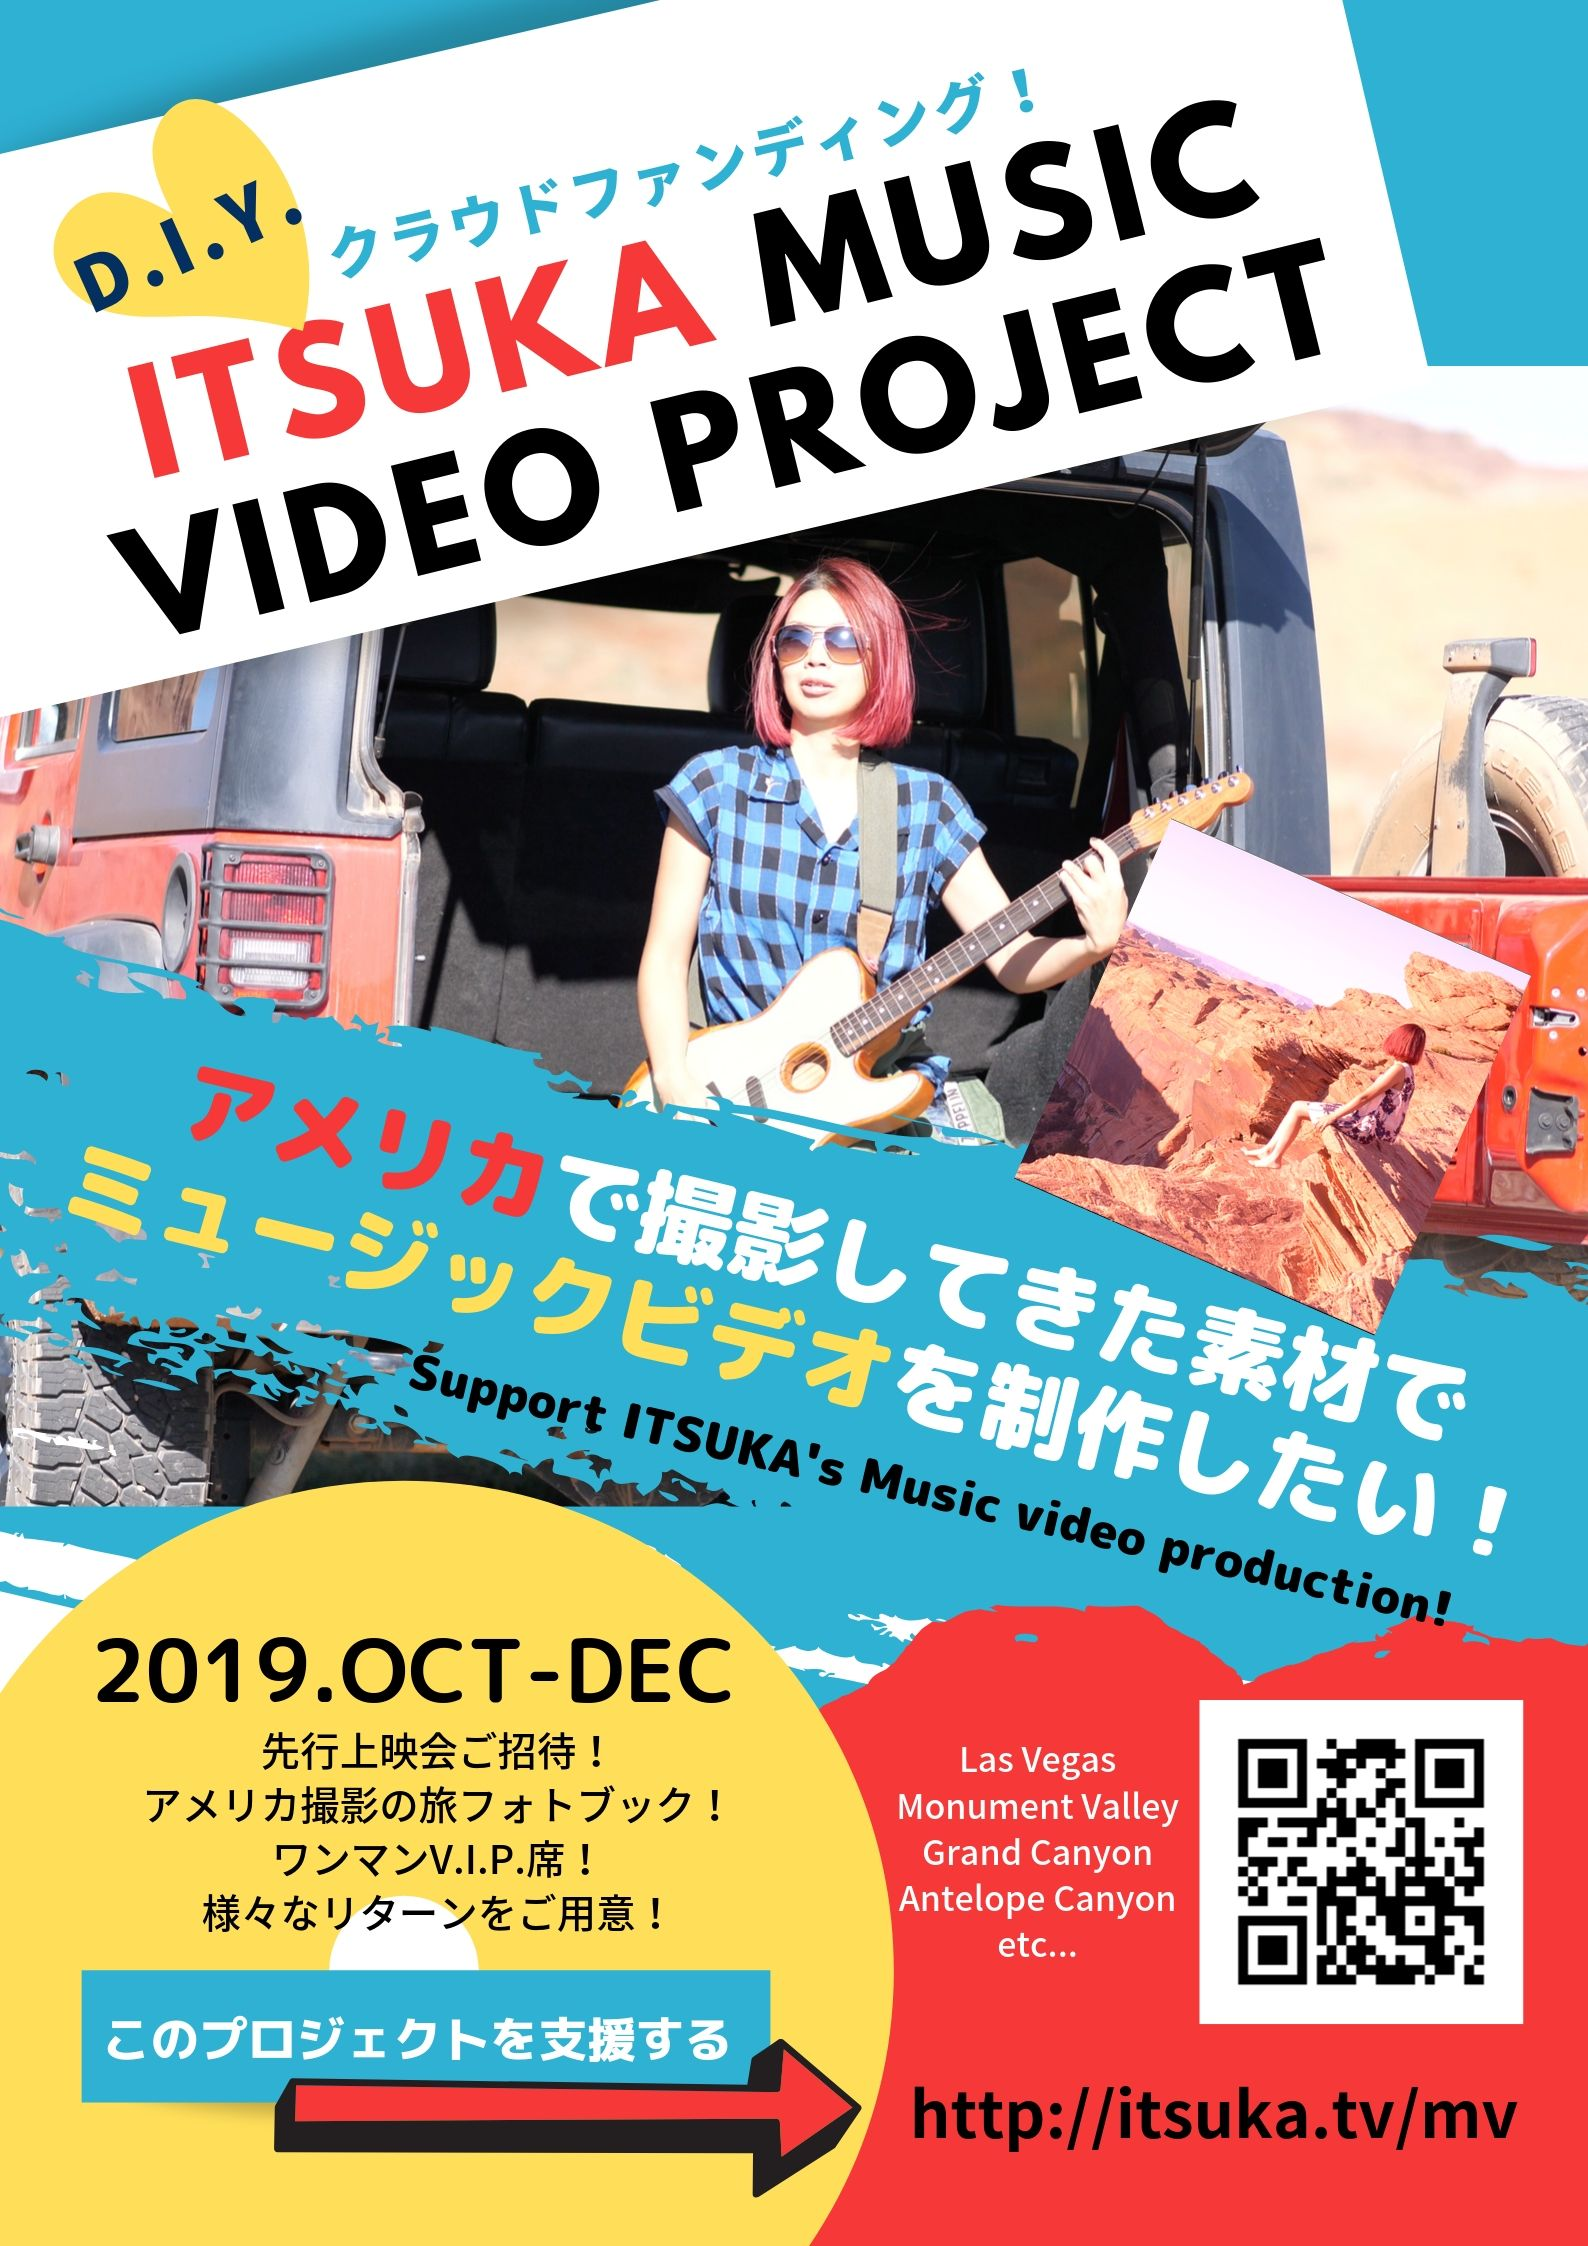 ITSUKA MUSIC VIDEO PROJECT